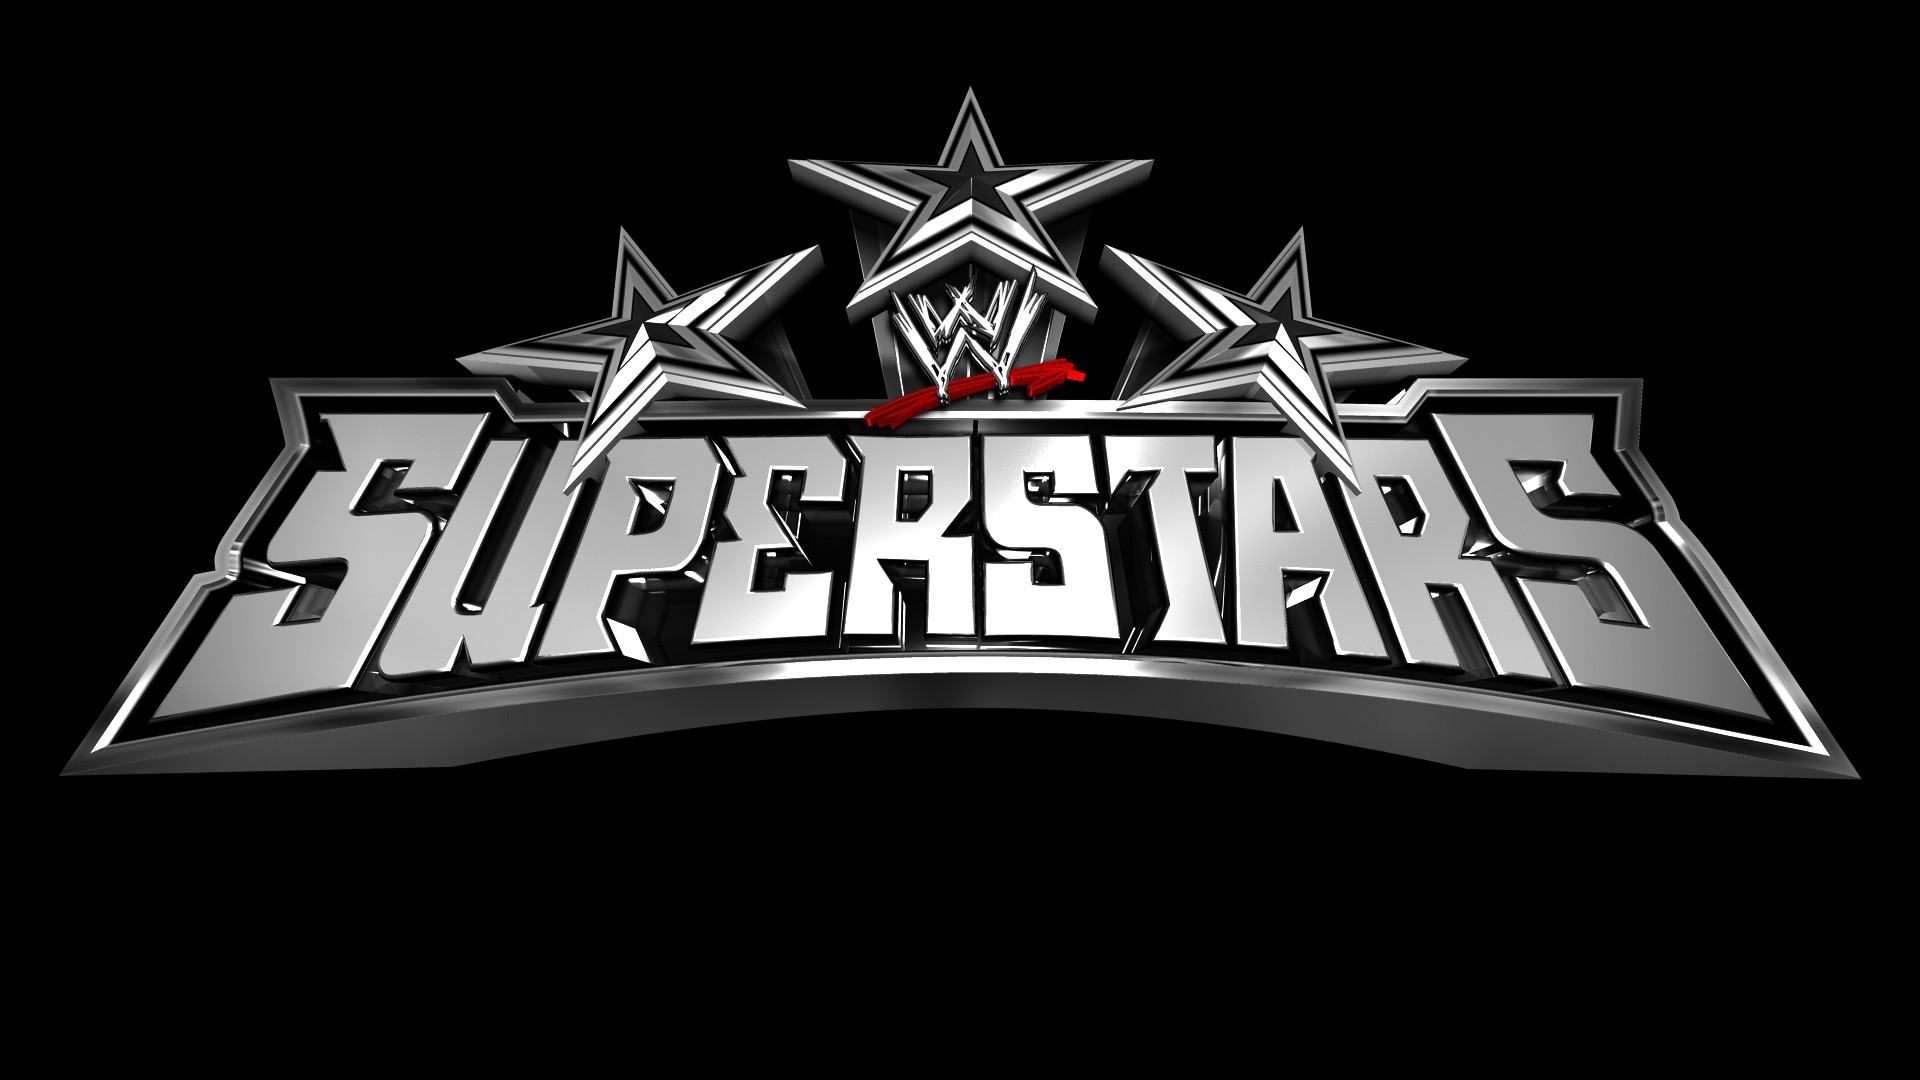 1920x1080 wwe superstars logo